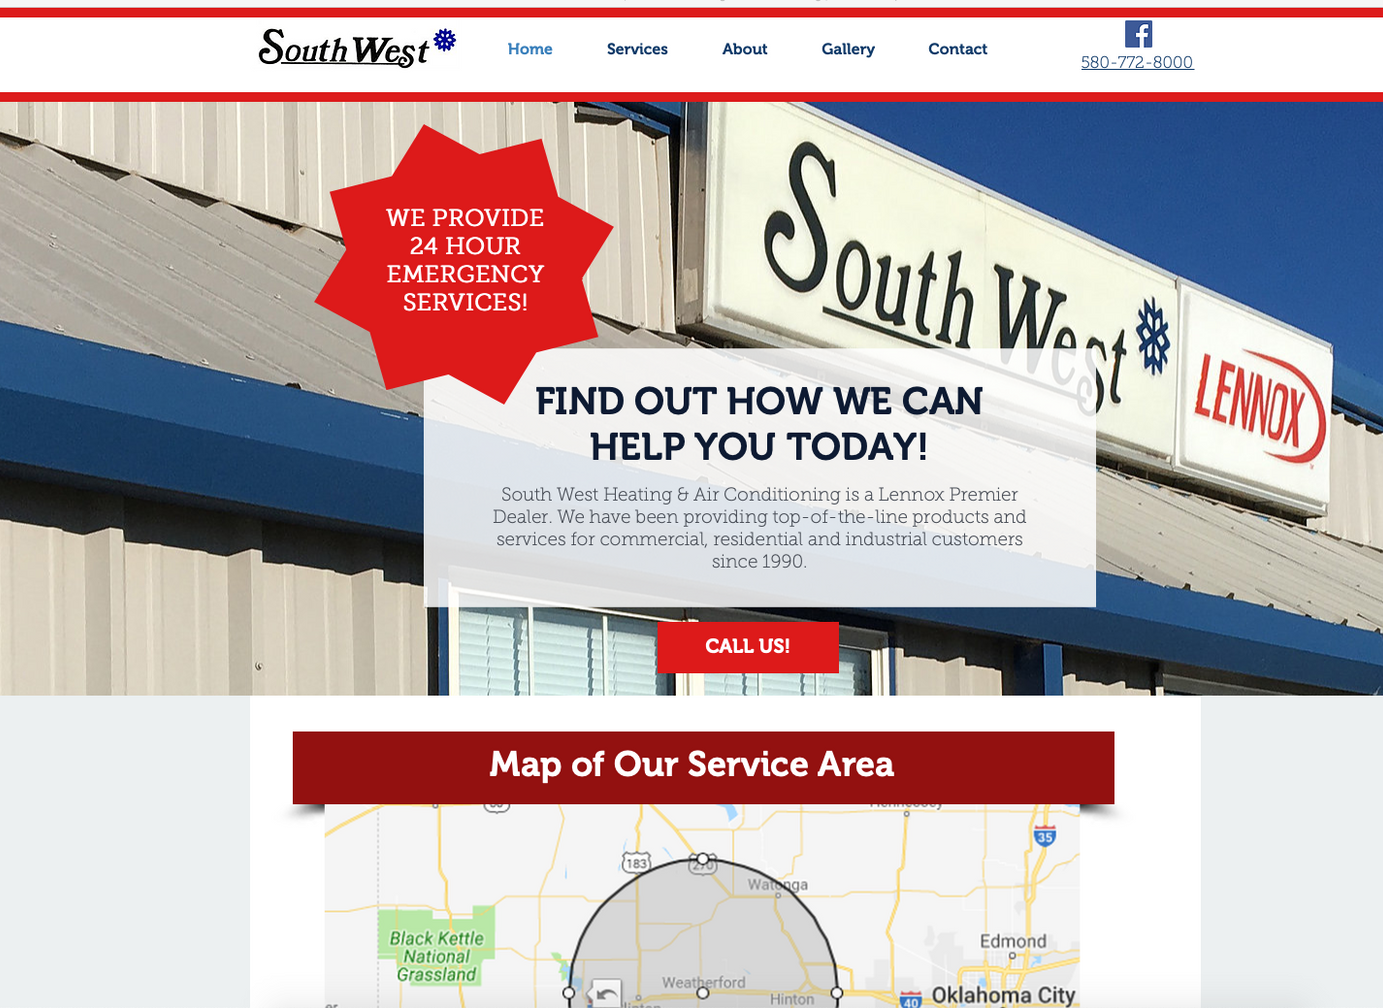 South West Heating & Air Conditioning